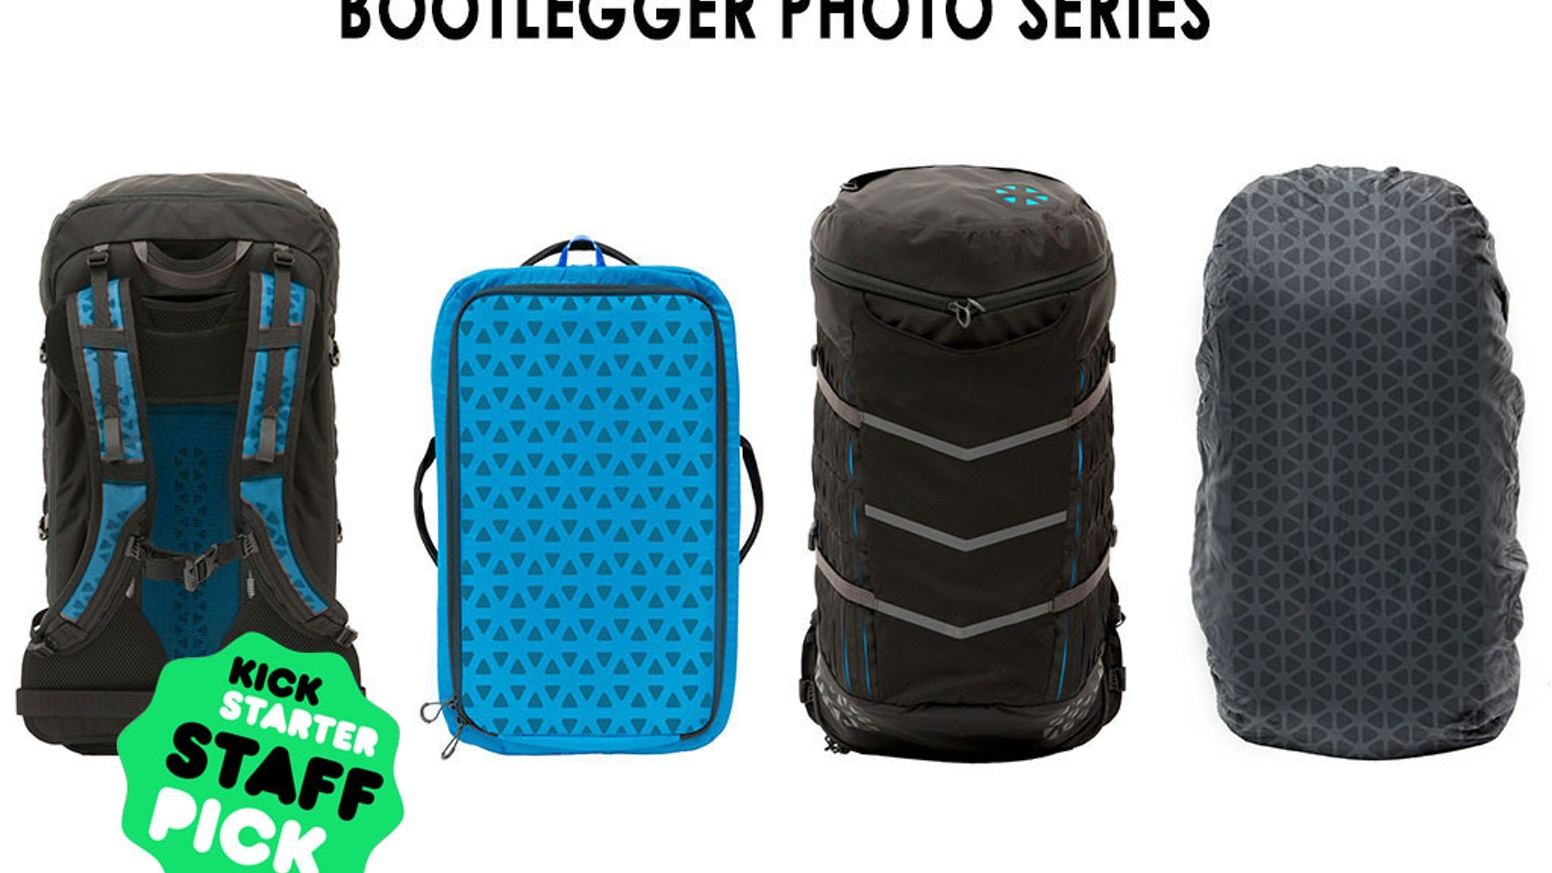 15aaee24fae Bootlegger Photo Series by Boreas Gear